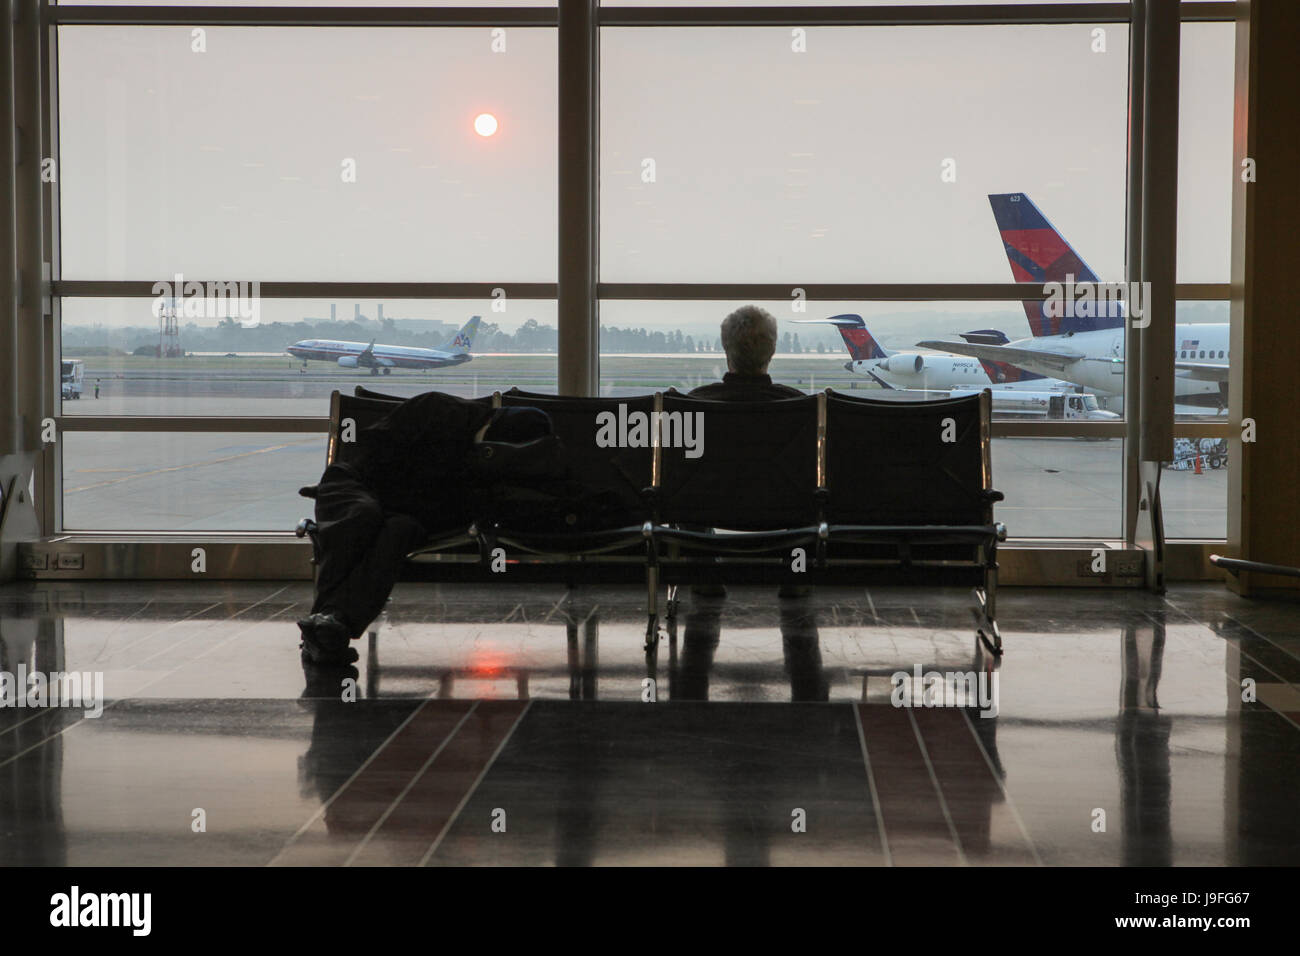 Just after sunrise, a traveler sits in Ronald Reagan National Airport and watches airplanes on the runway. - Stock Image